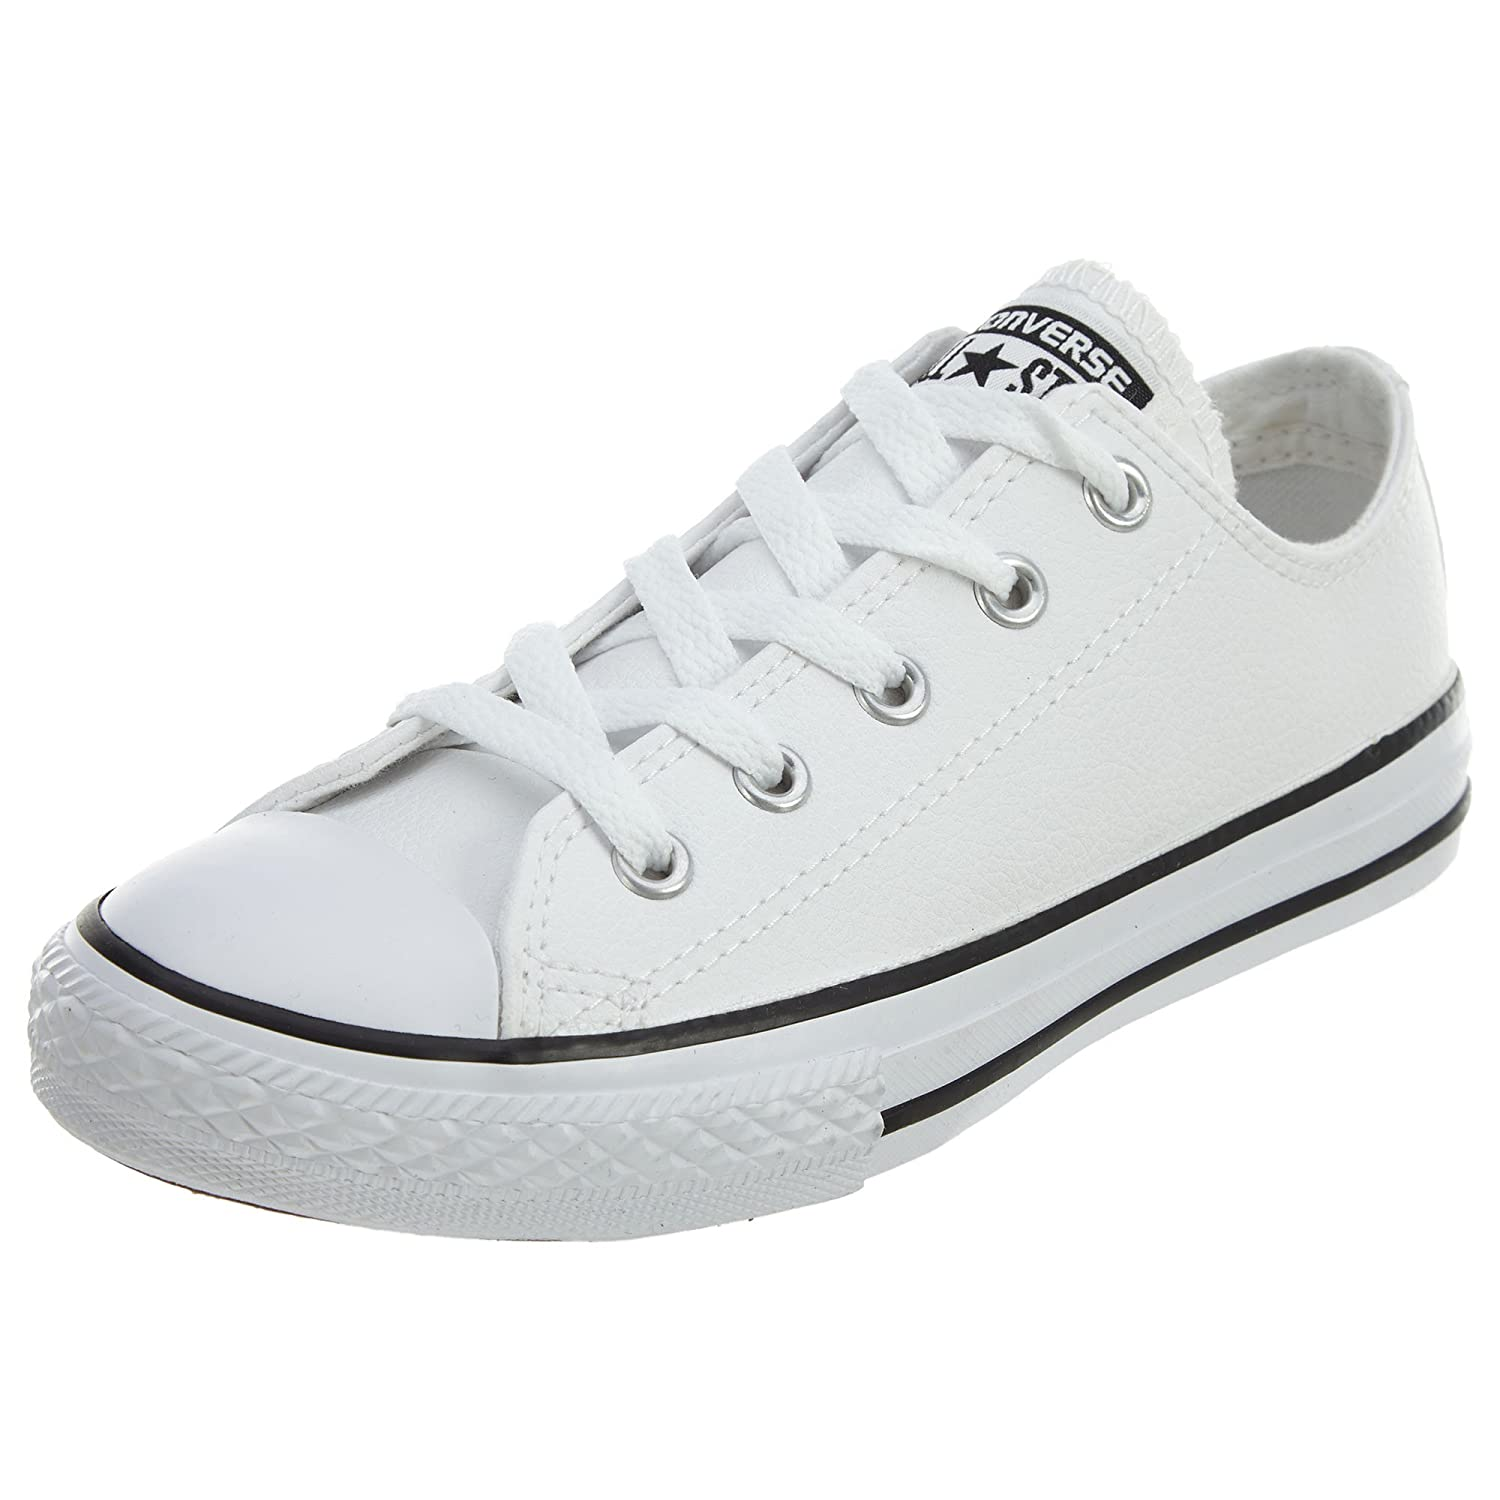 Weiß Leather Converse Unisex-Kinder CTAS-ox-Charcoal-Infant Fitnessschuhe